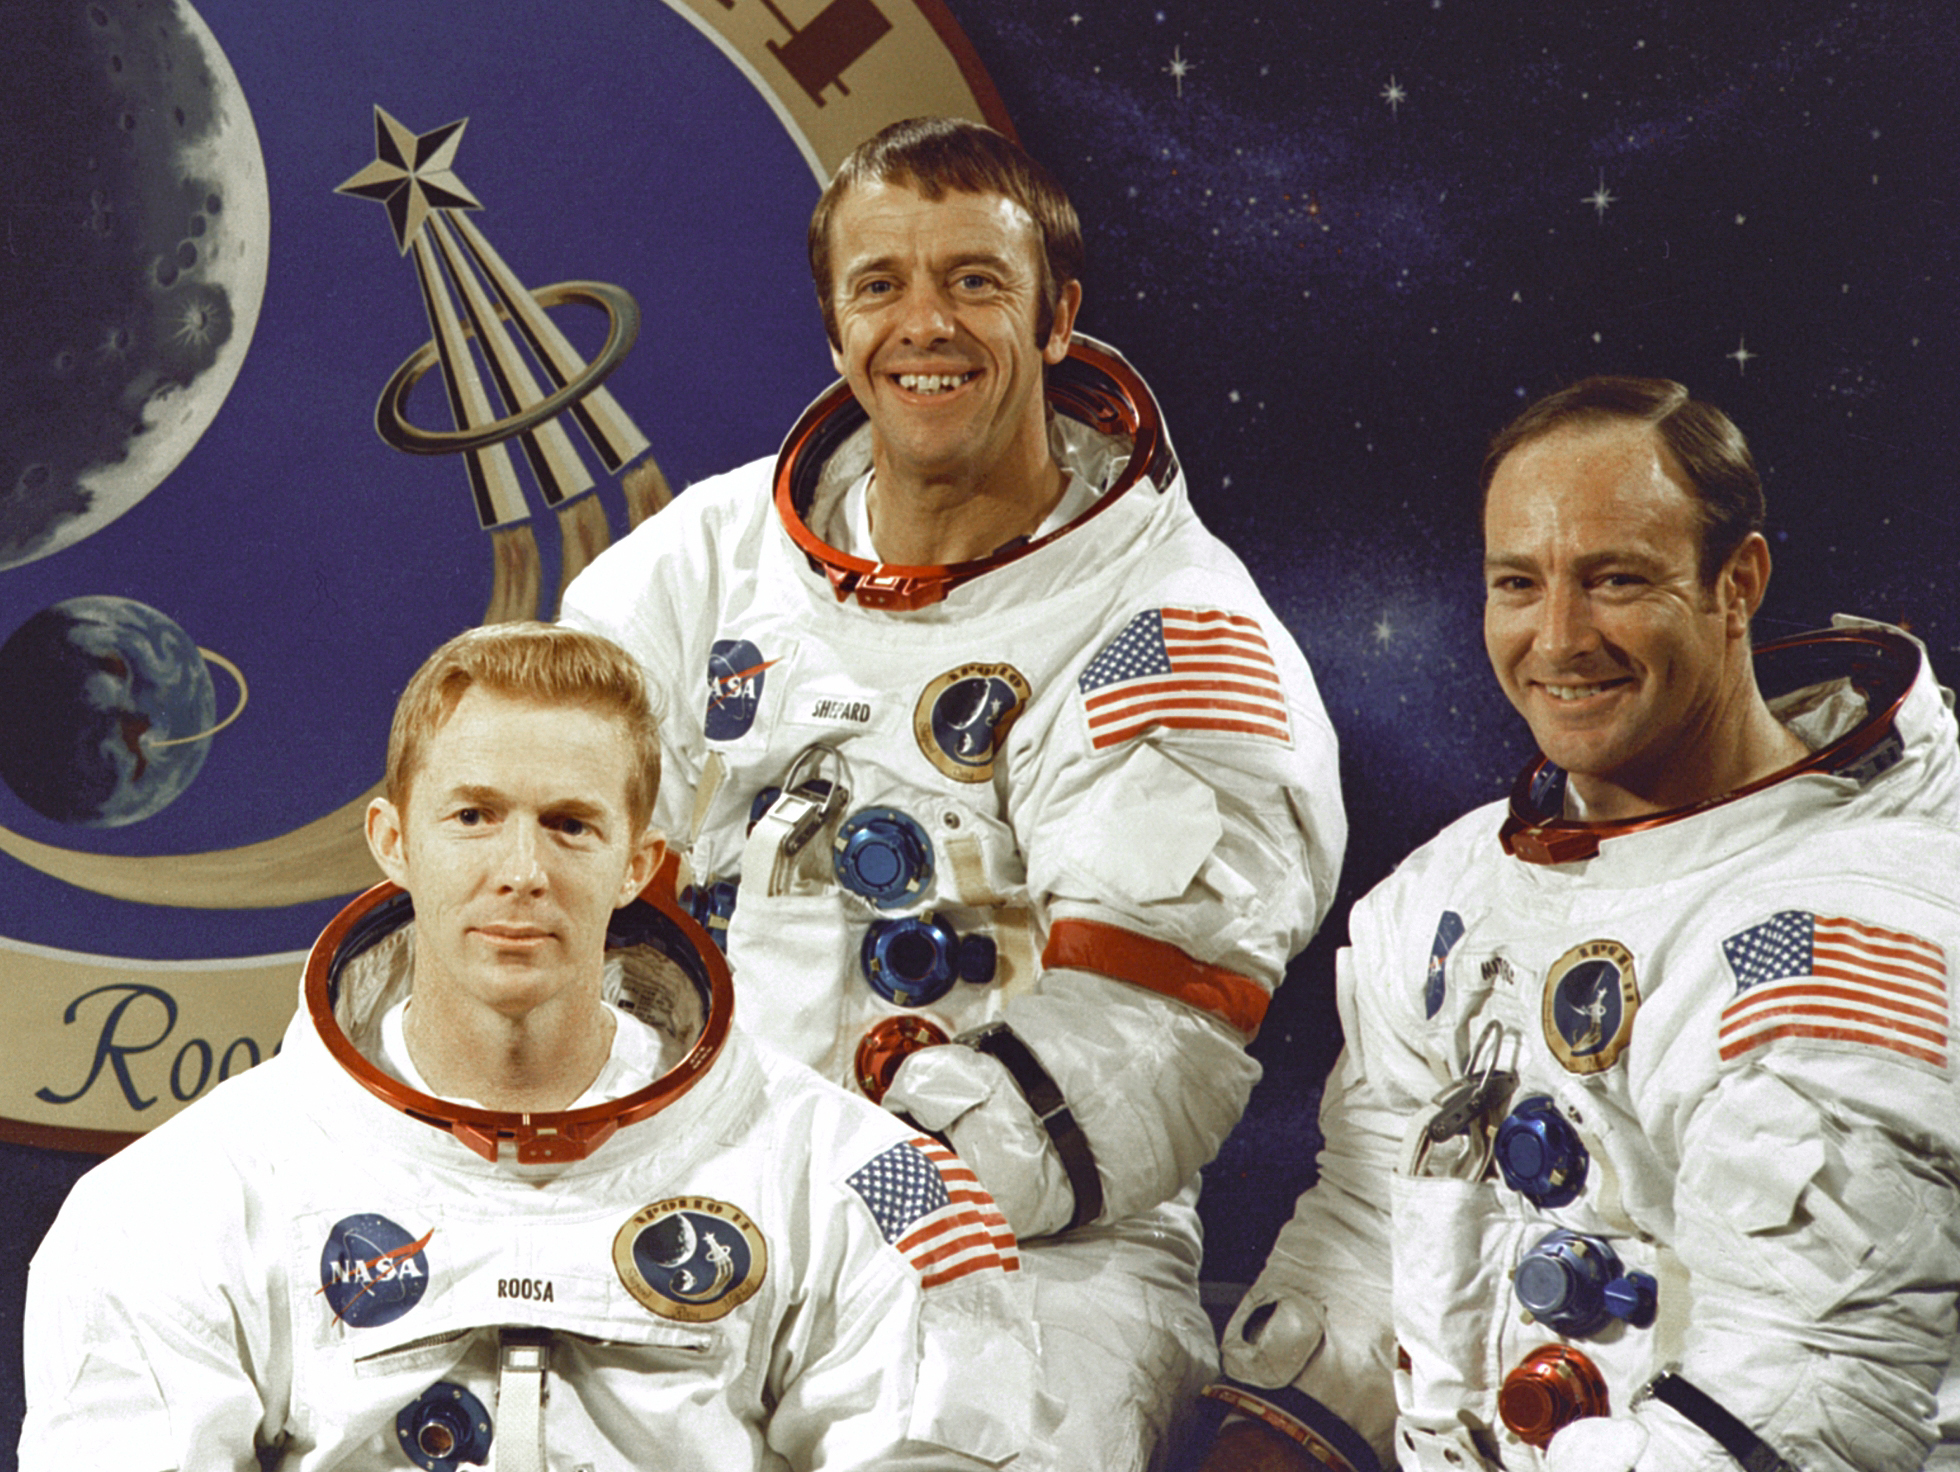 apollo 2 crew - photo #23